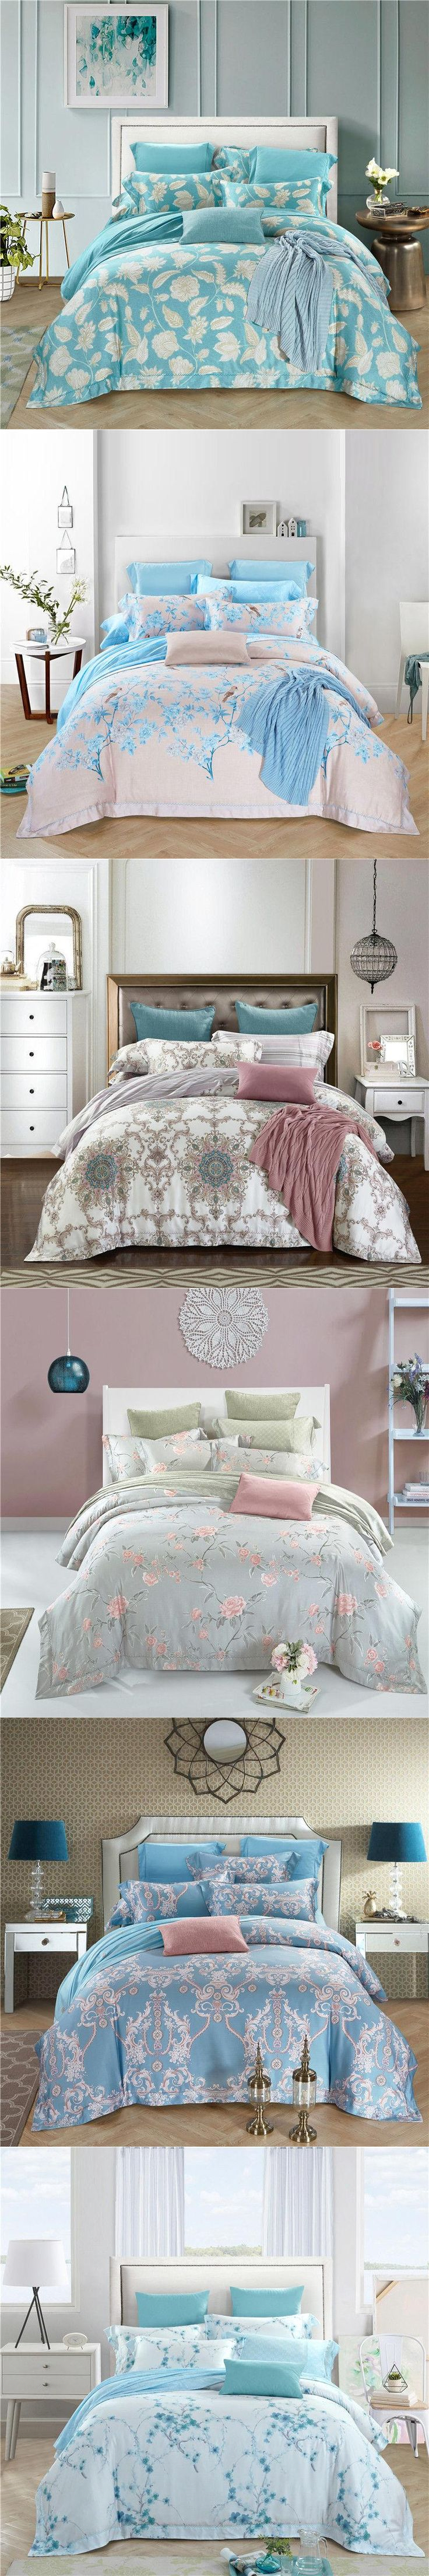 bedding set king size bedding set 60s double-sided tencel European court luxury bed linens plant duvet cover king size bed sheet